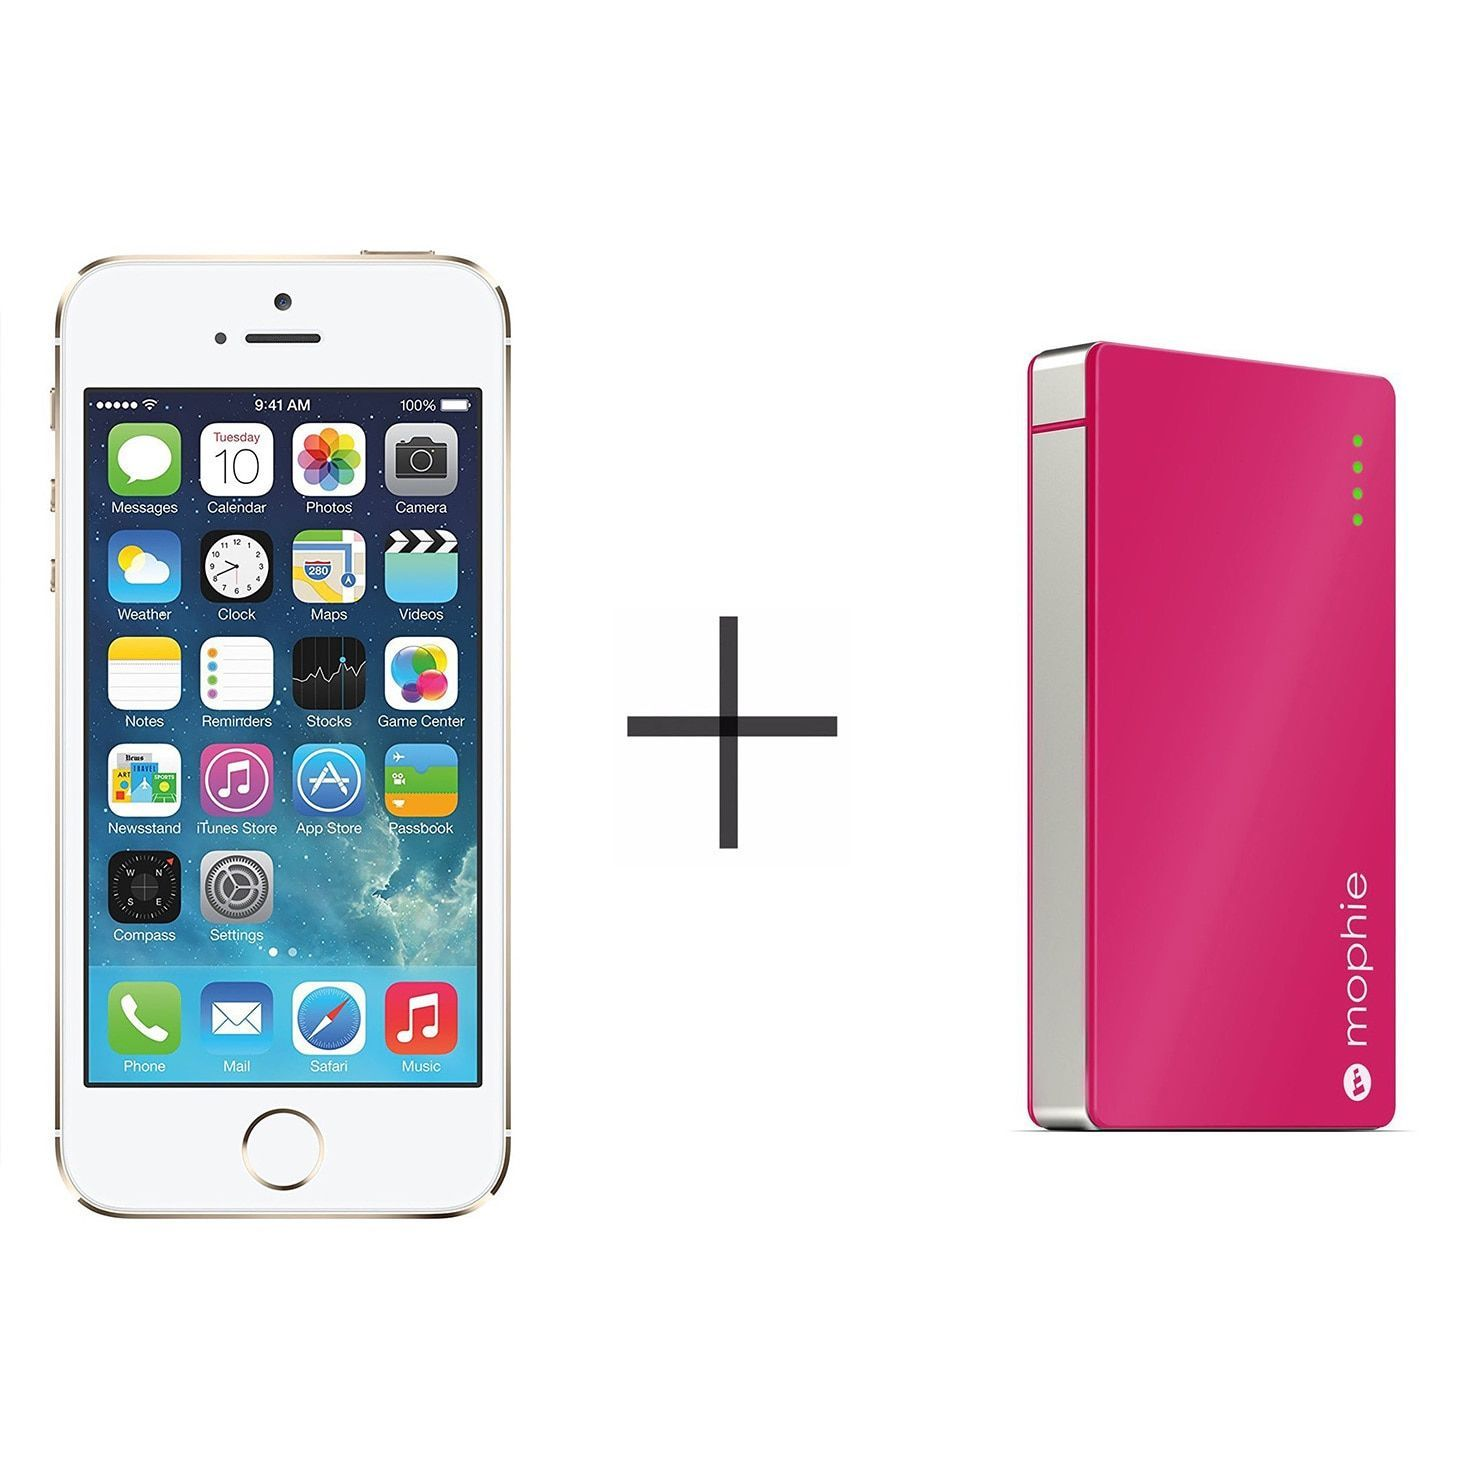 Apple iPhone 5s 32GB GSM Phone Gold Mophie 2775 Powerstation Mini